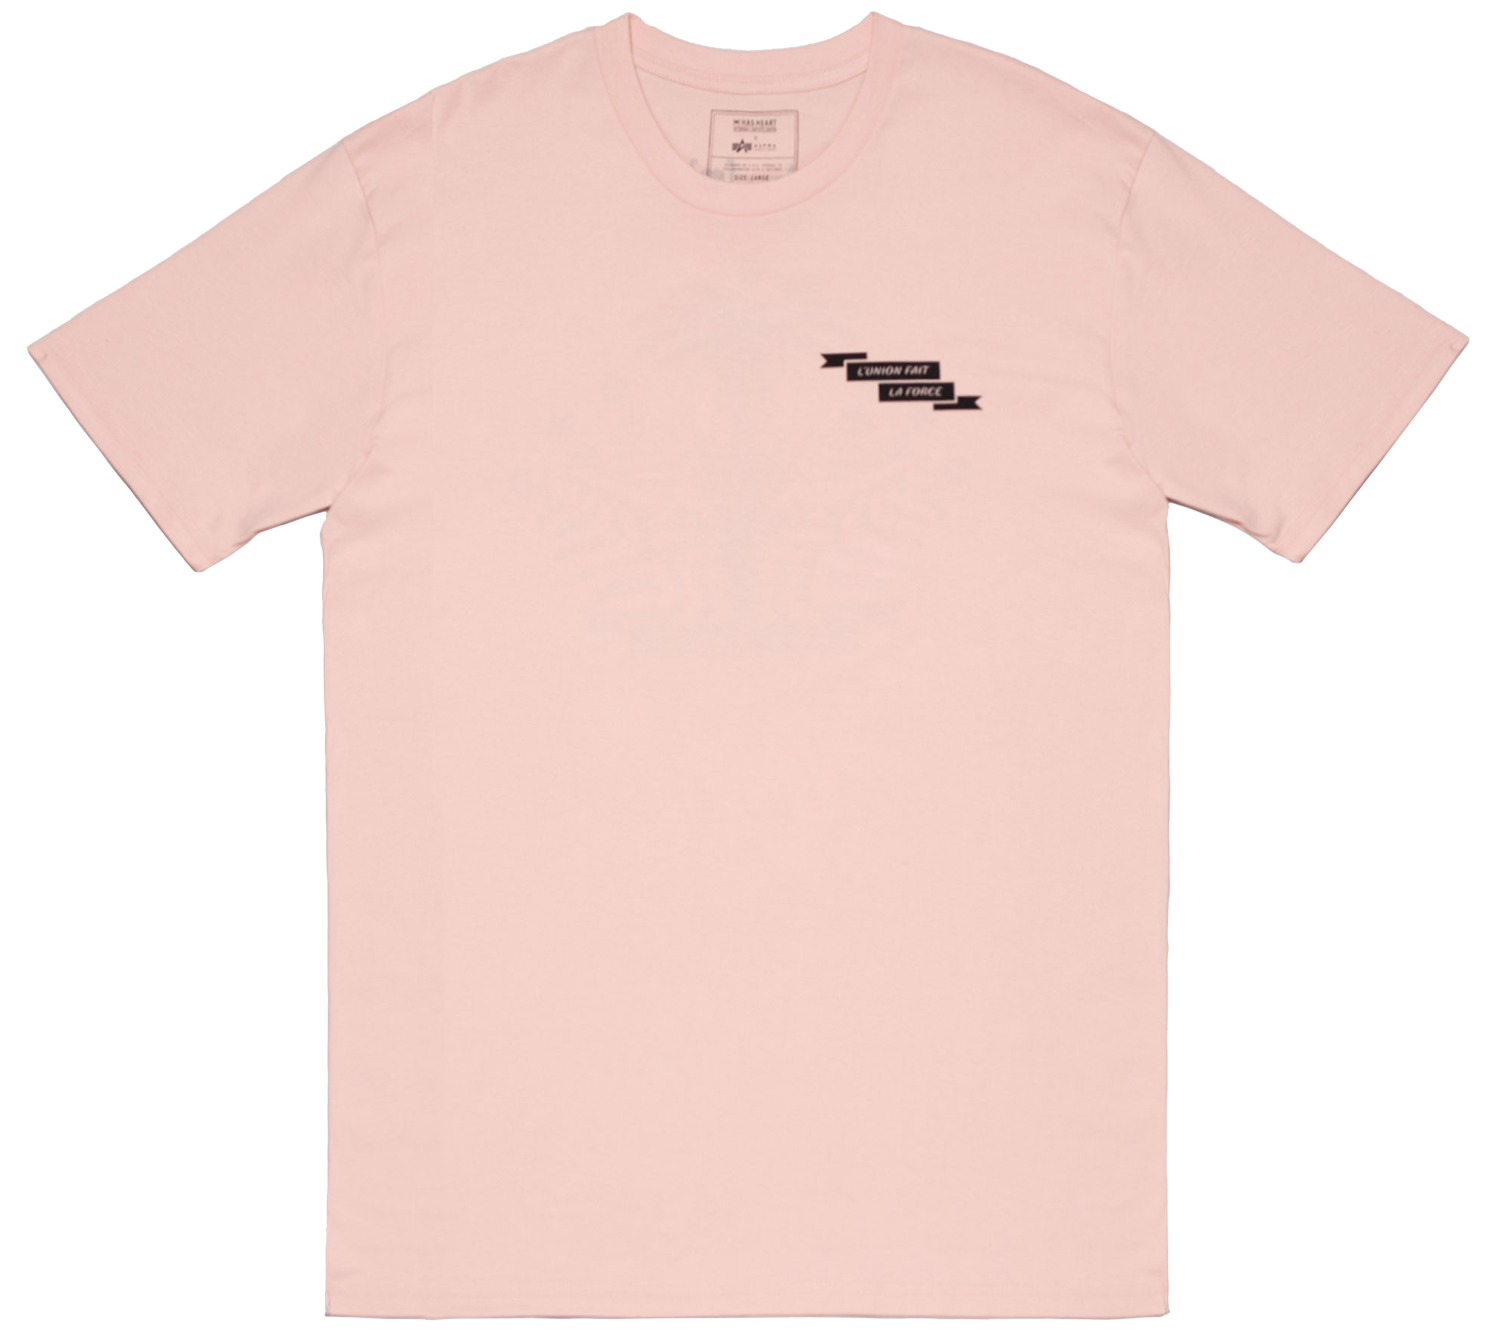 15-FL-lunion-shirt-front.png